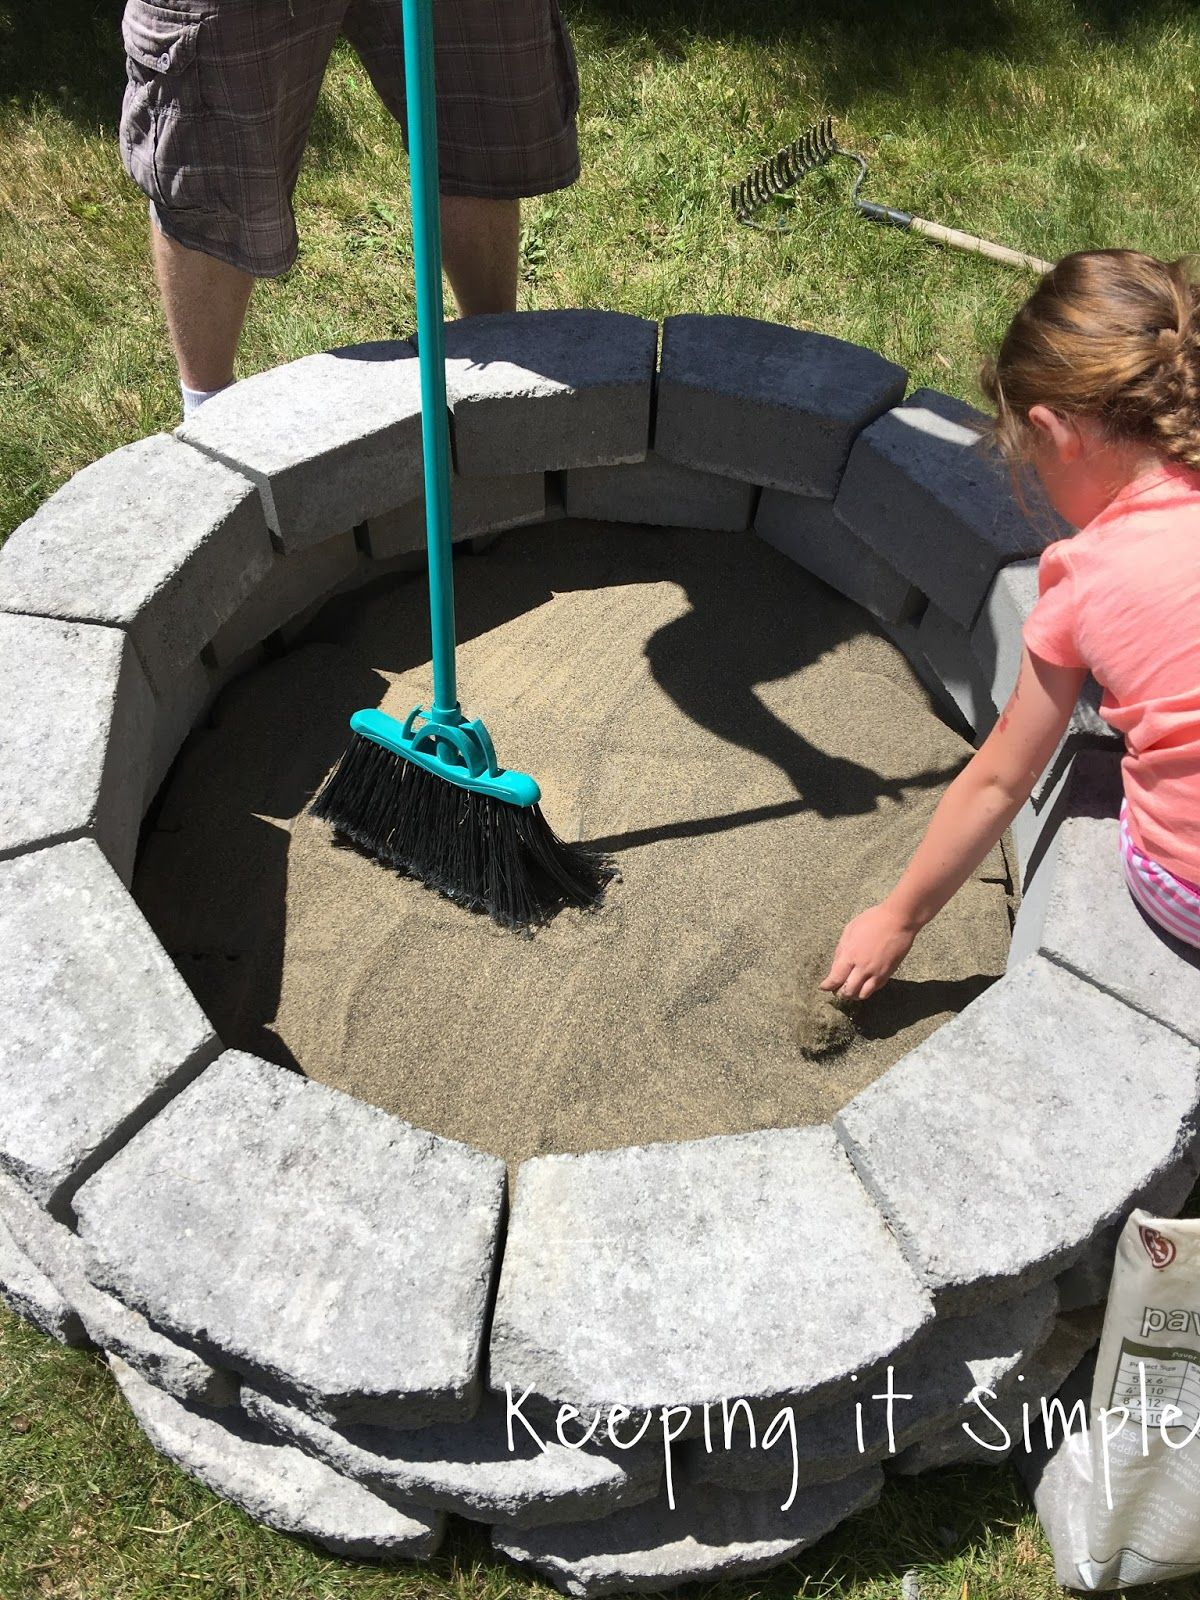 How to build a diy fire pit for only 60 diy fire pit backyard keeping it simple how to build a diy fire pit for only 60 solutioingenieria Gallery